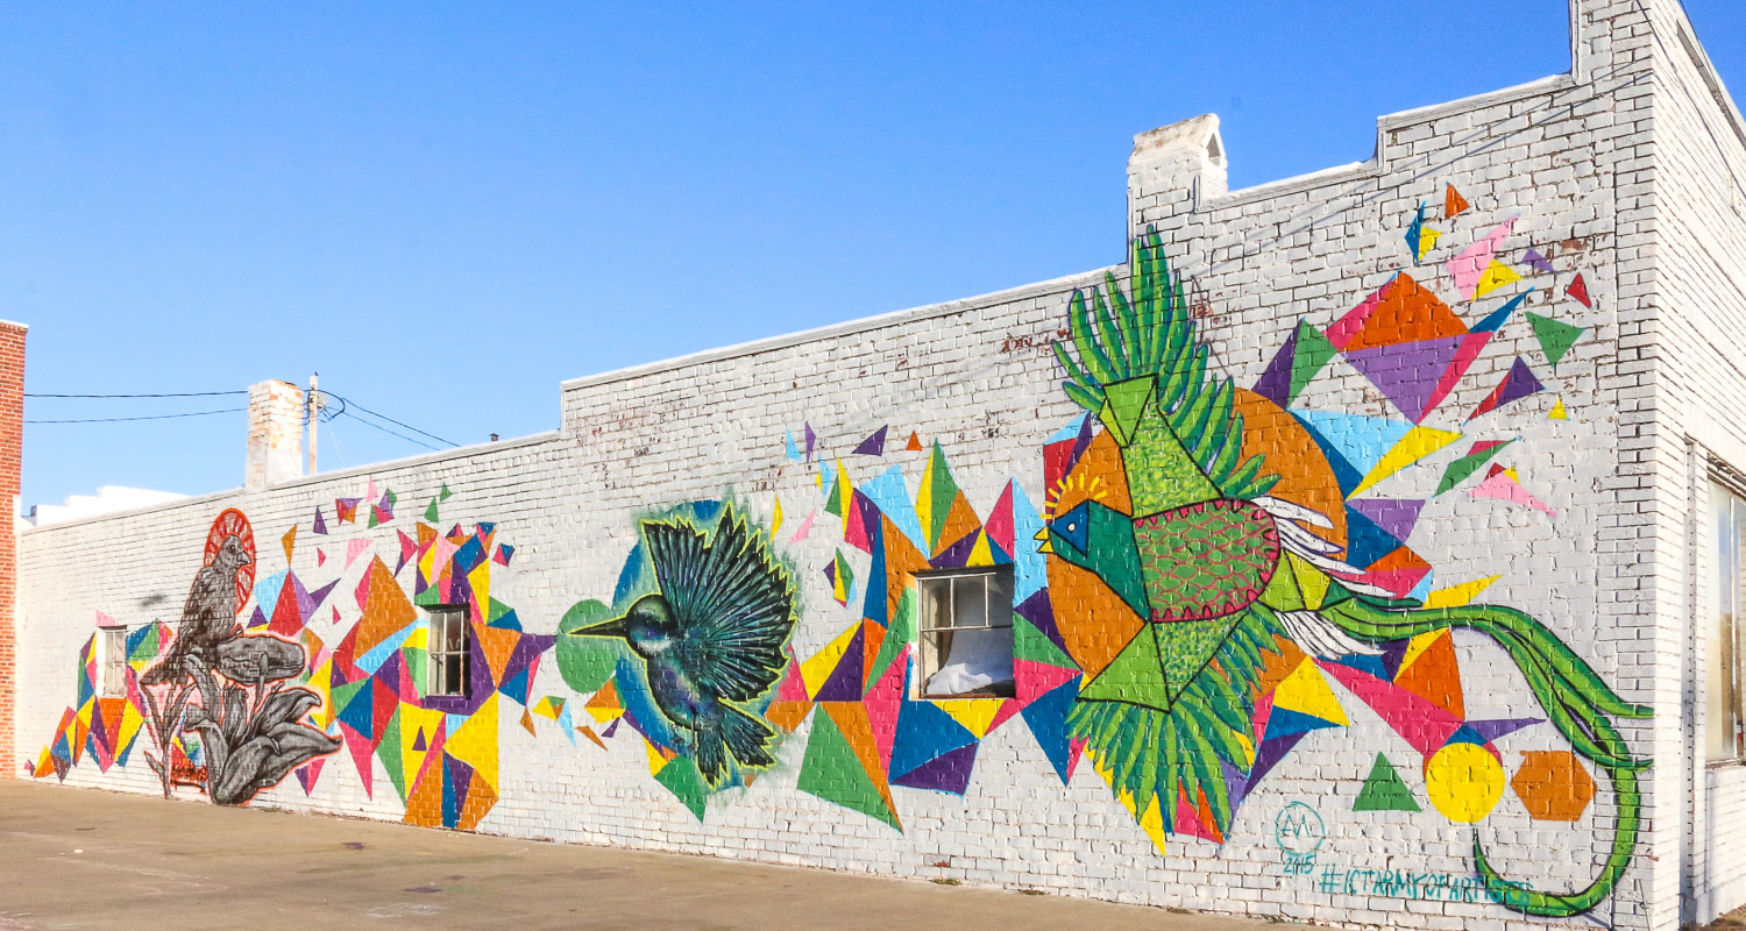 Wichita, Kansas murals